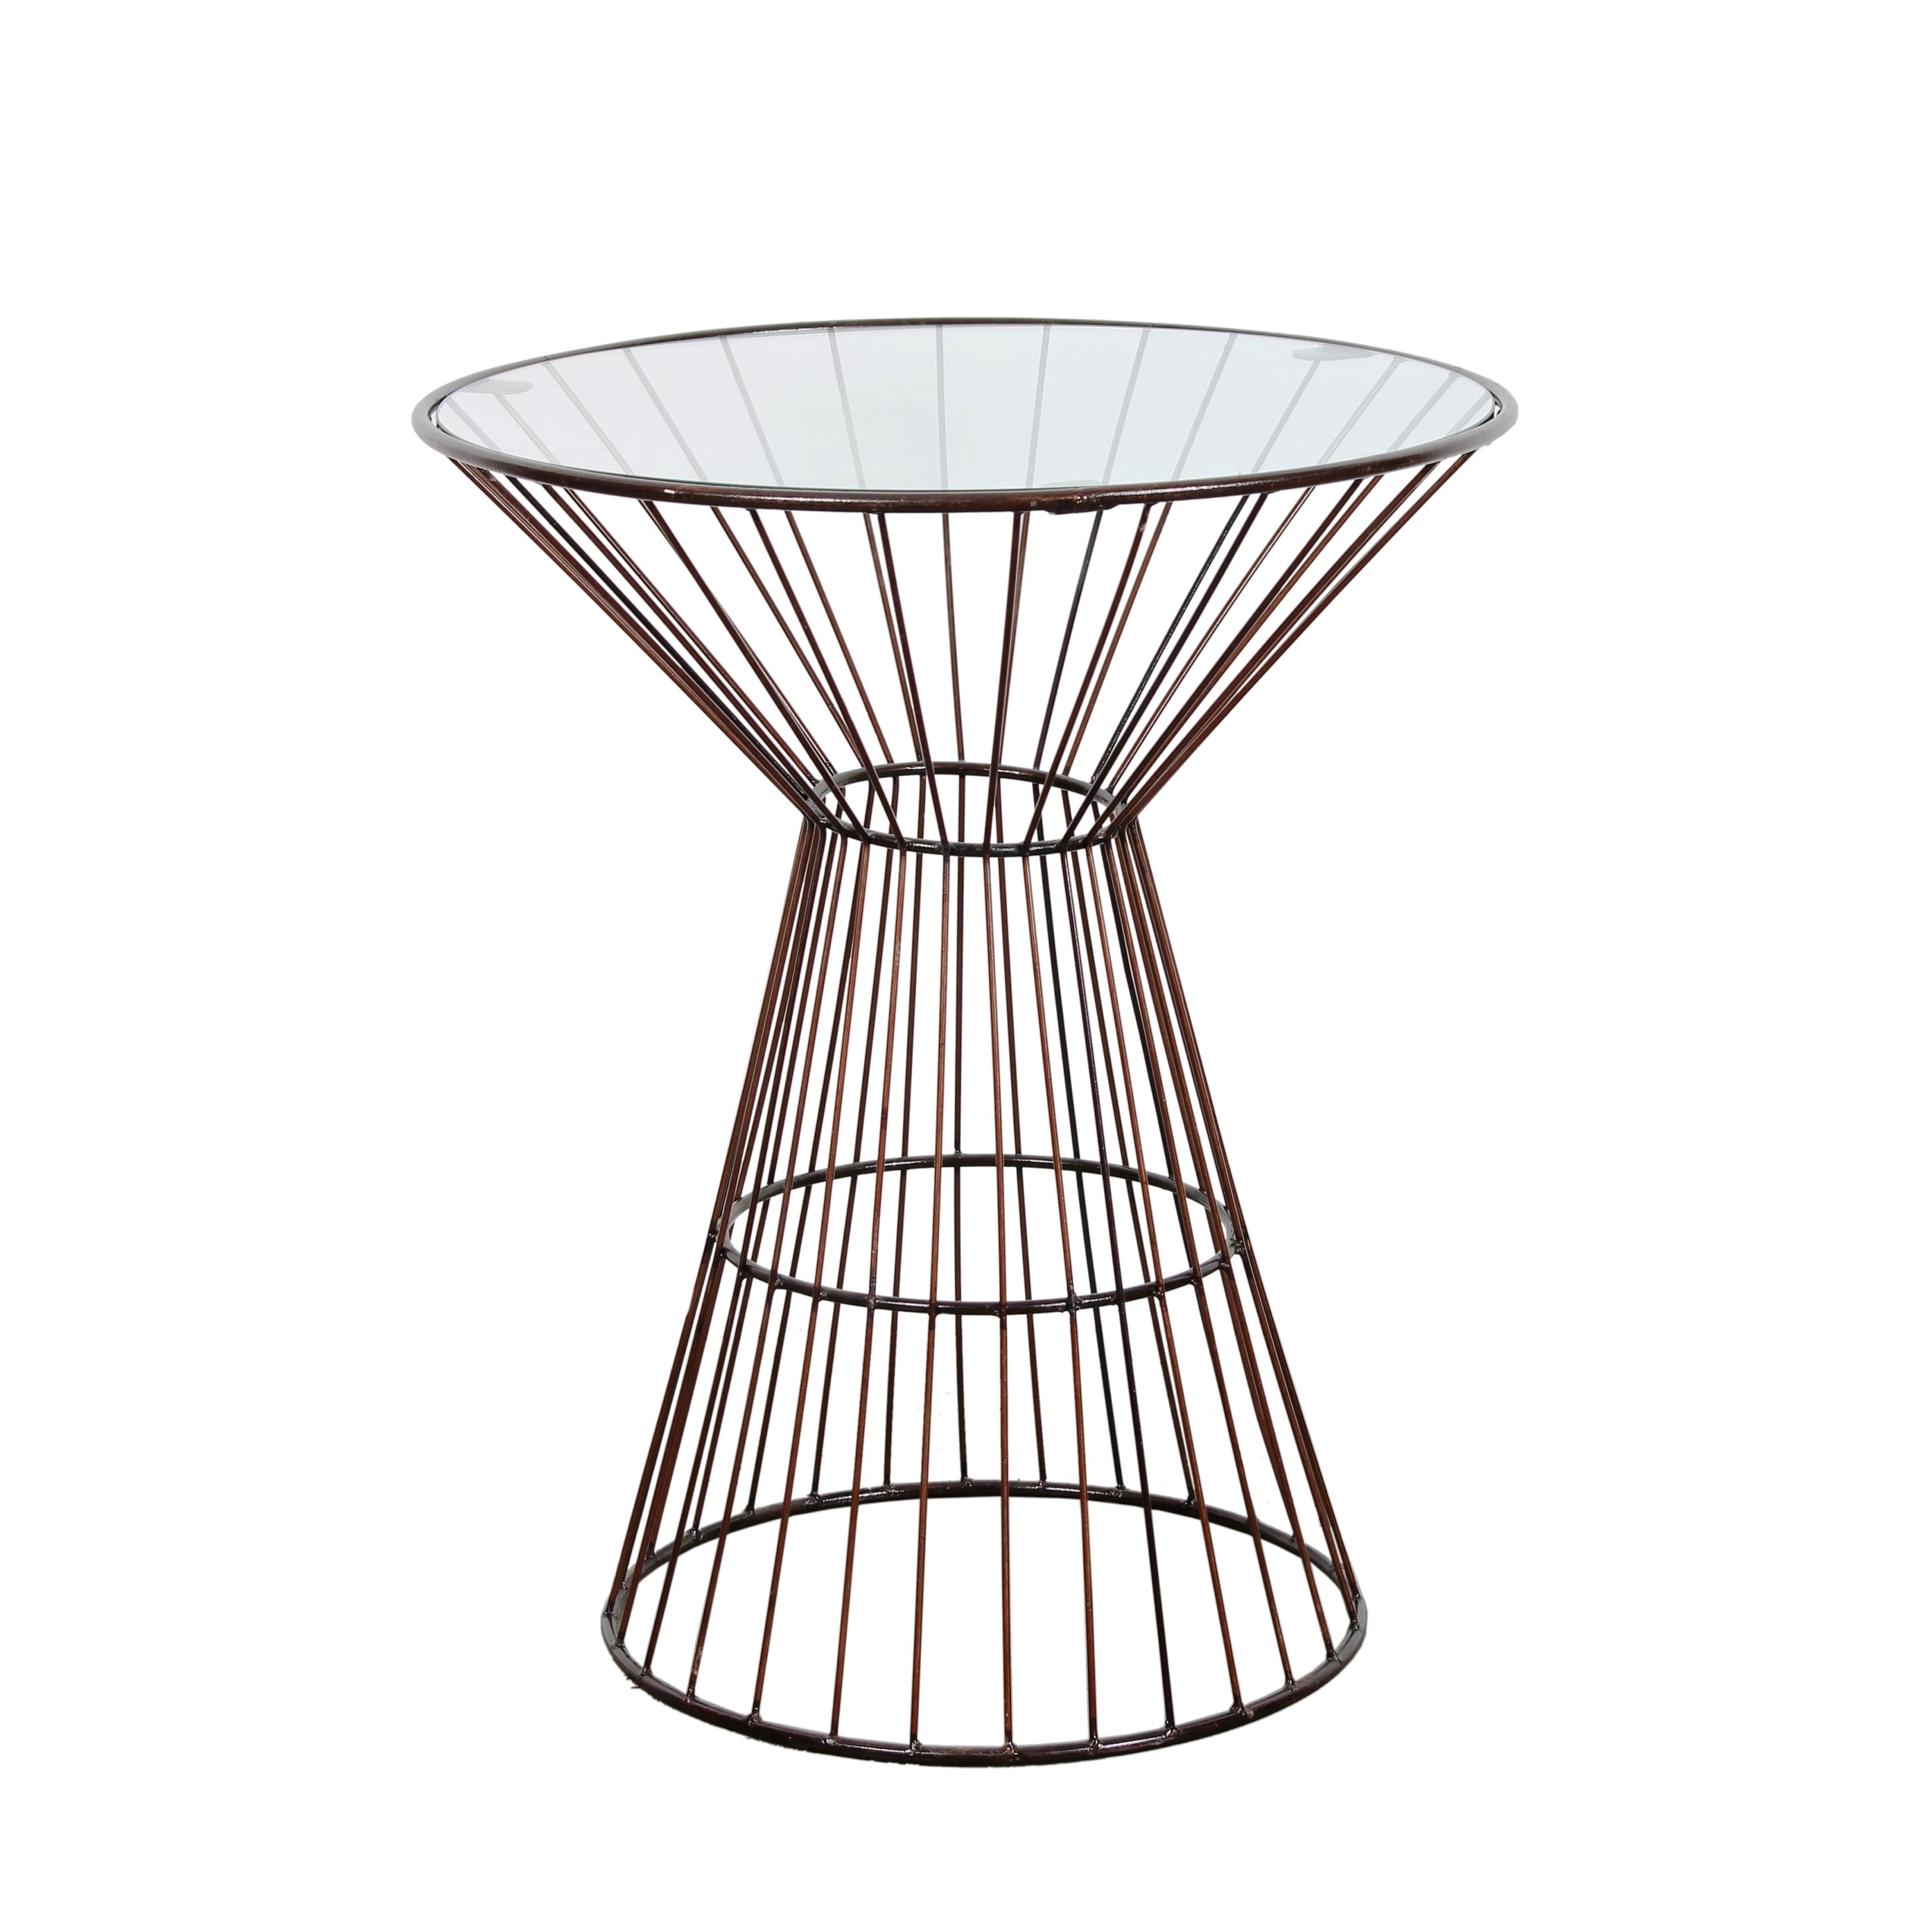 bronze wire frame tall side table with glass top outdoor free shipping today uttermost art teak bench bedside units bistro patio set cover rafferty end ashley furniture white bar